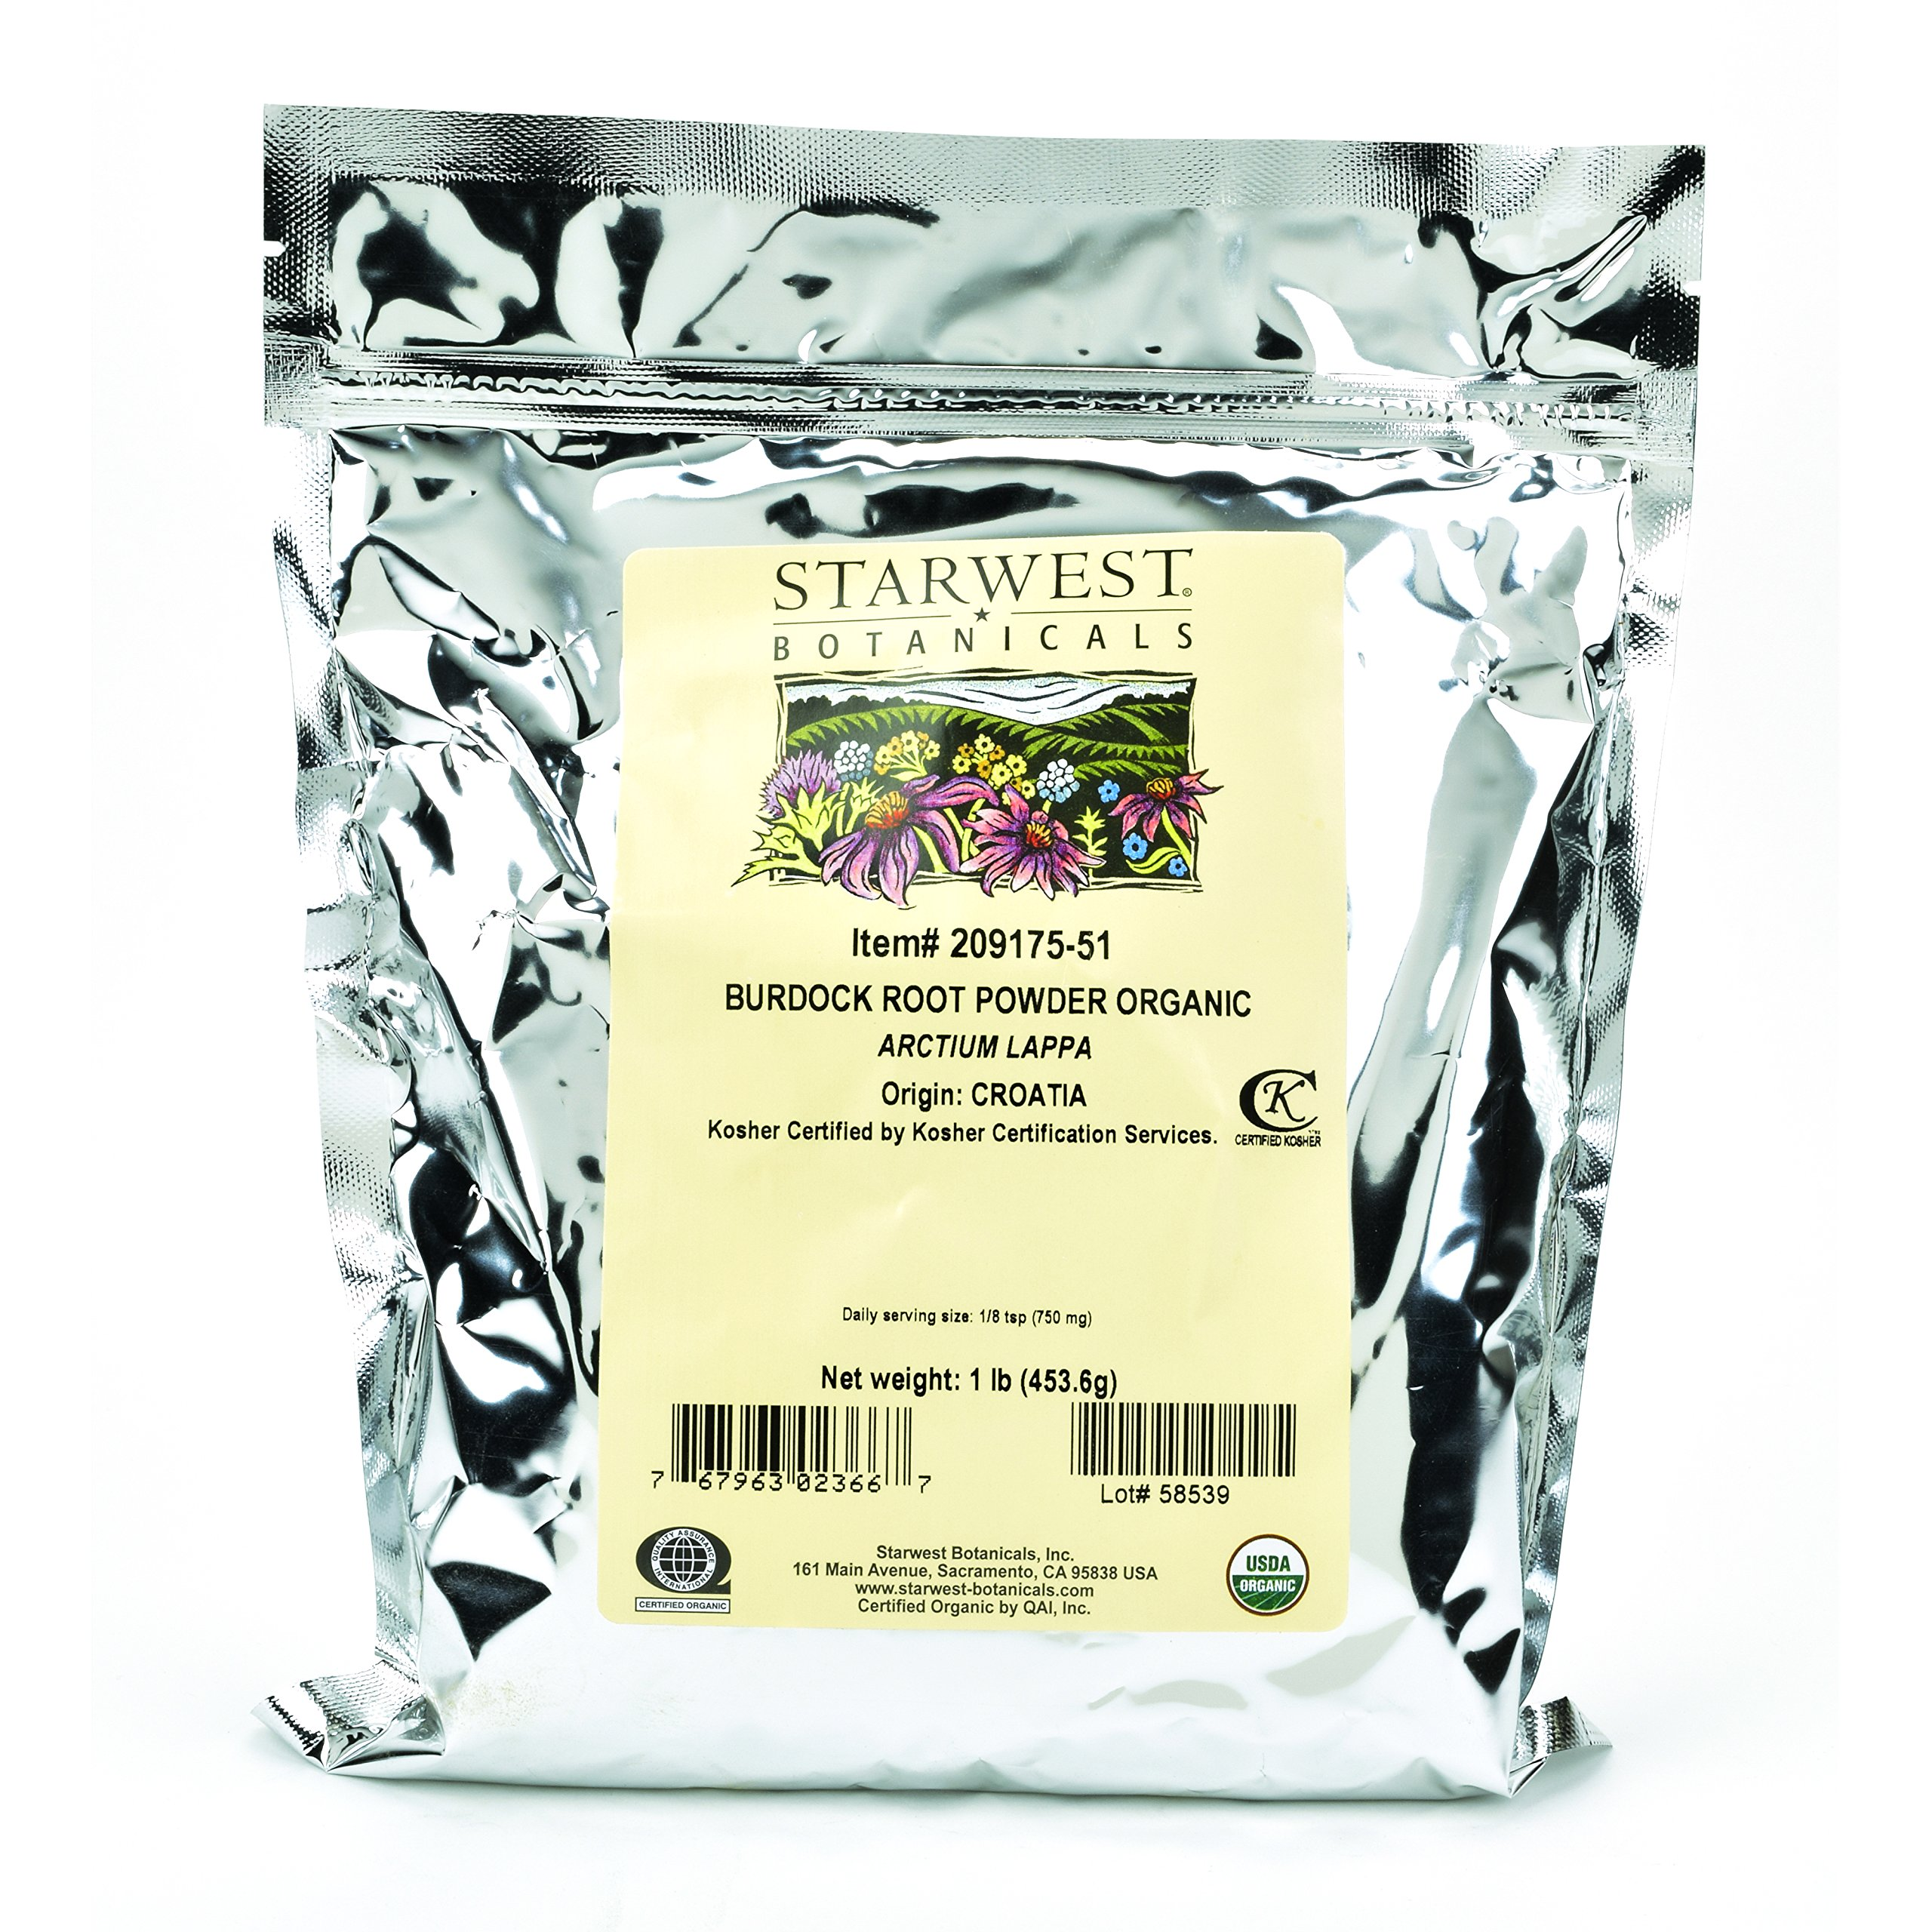 Starwest Botanicals Burdock Root Powder, 1 Pound